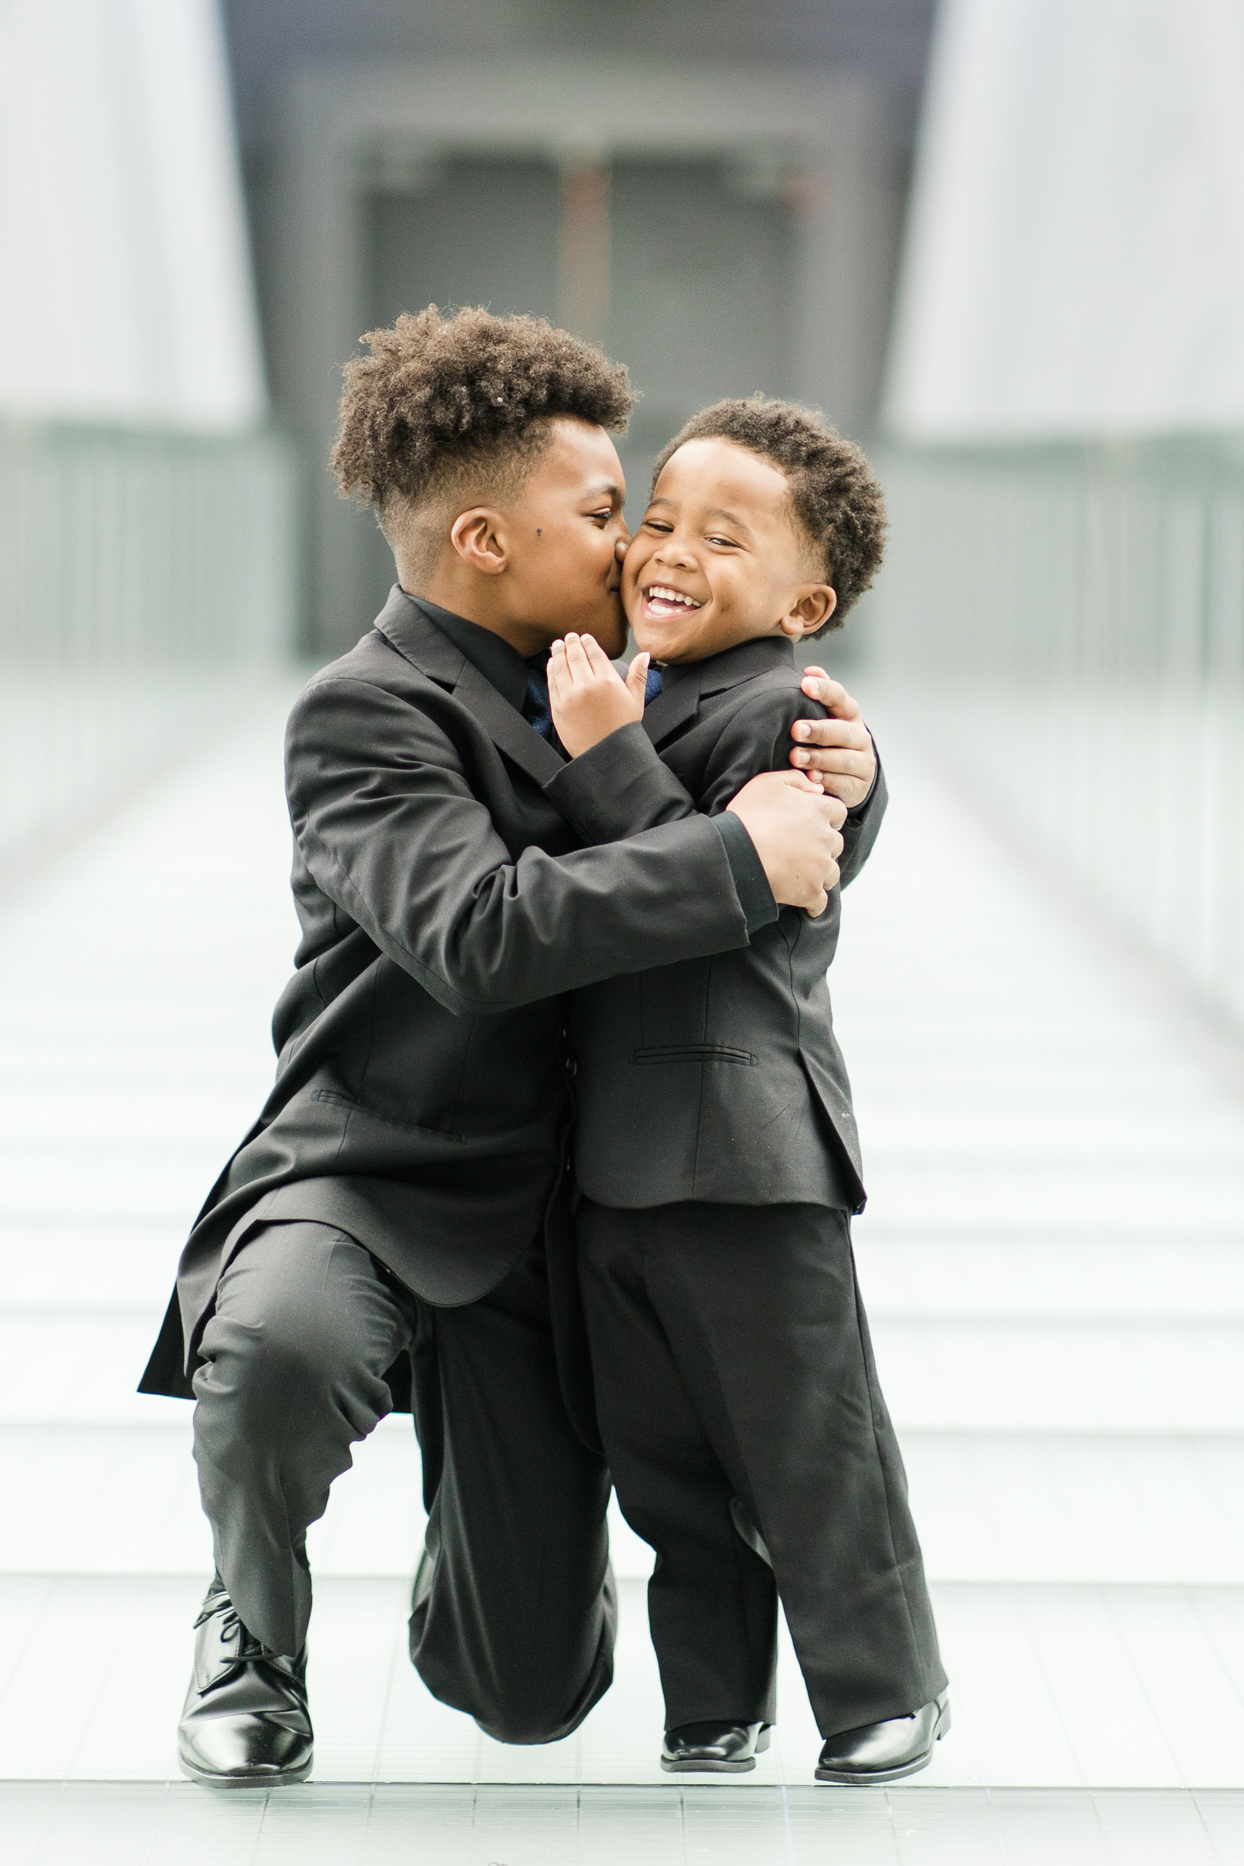 ring bearers in black suits hugging and smiling